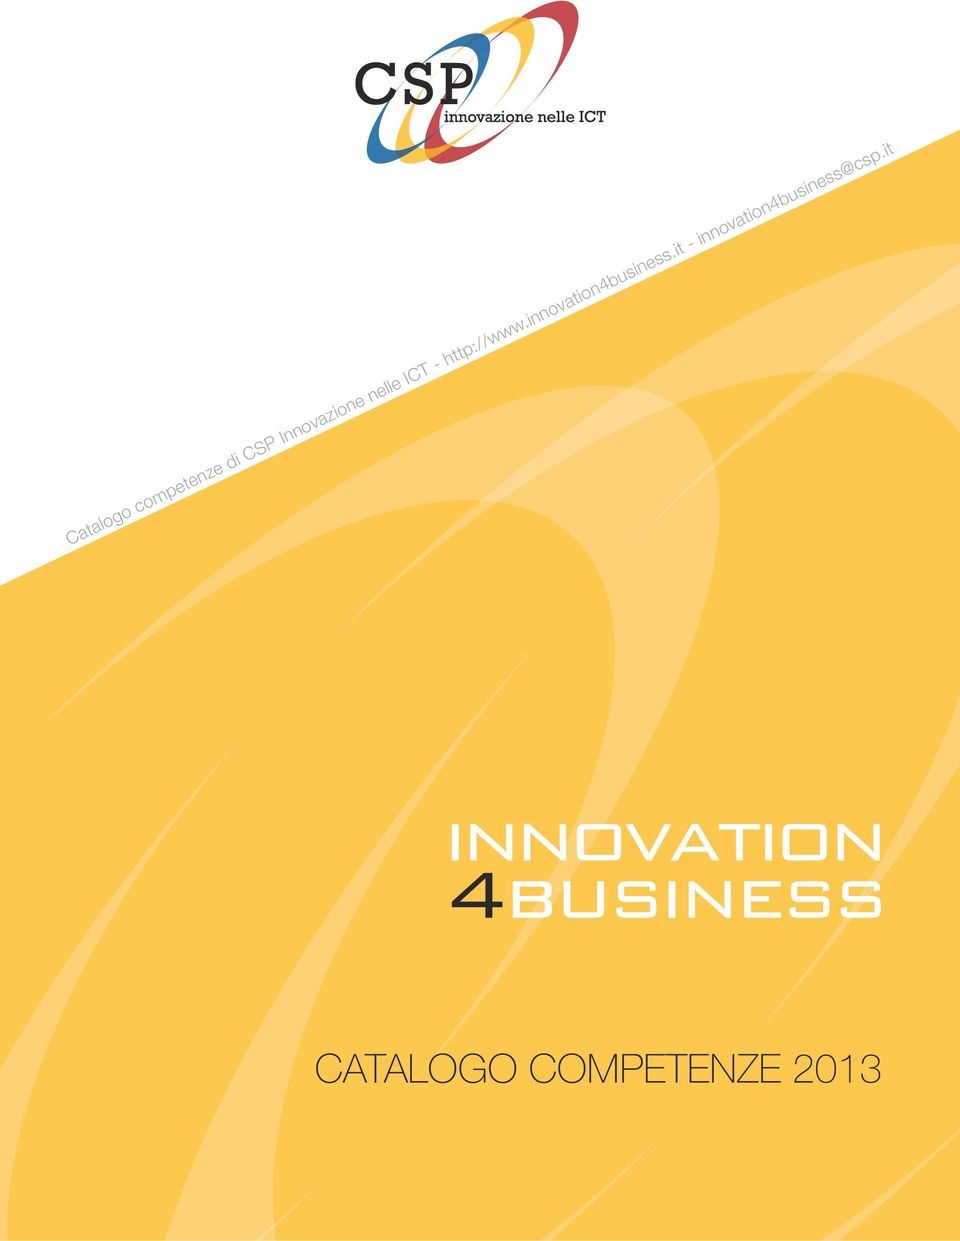 innovation4business.